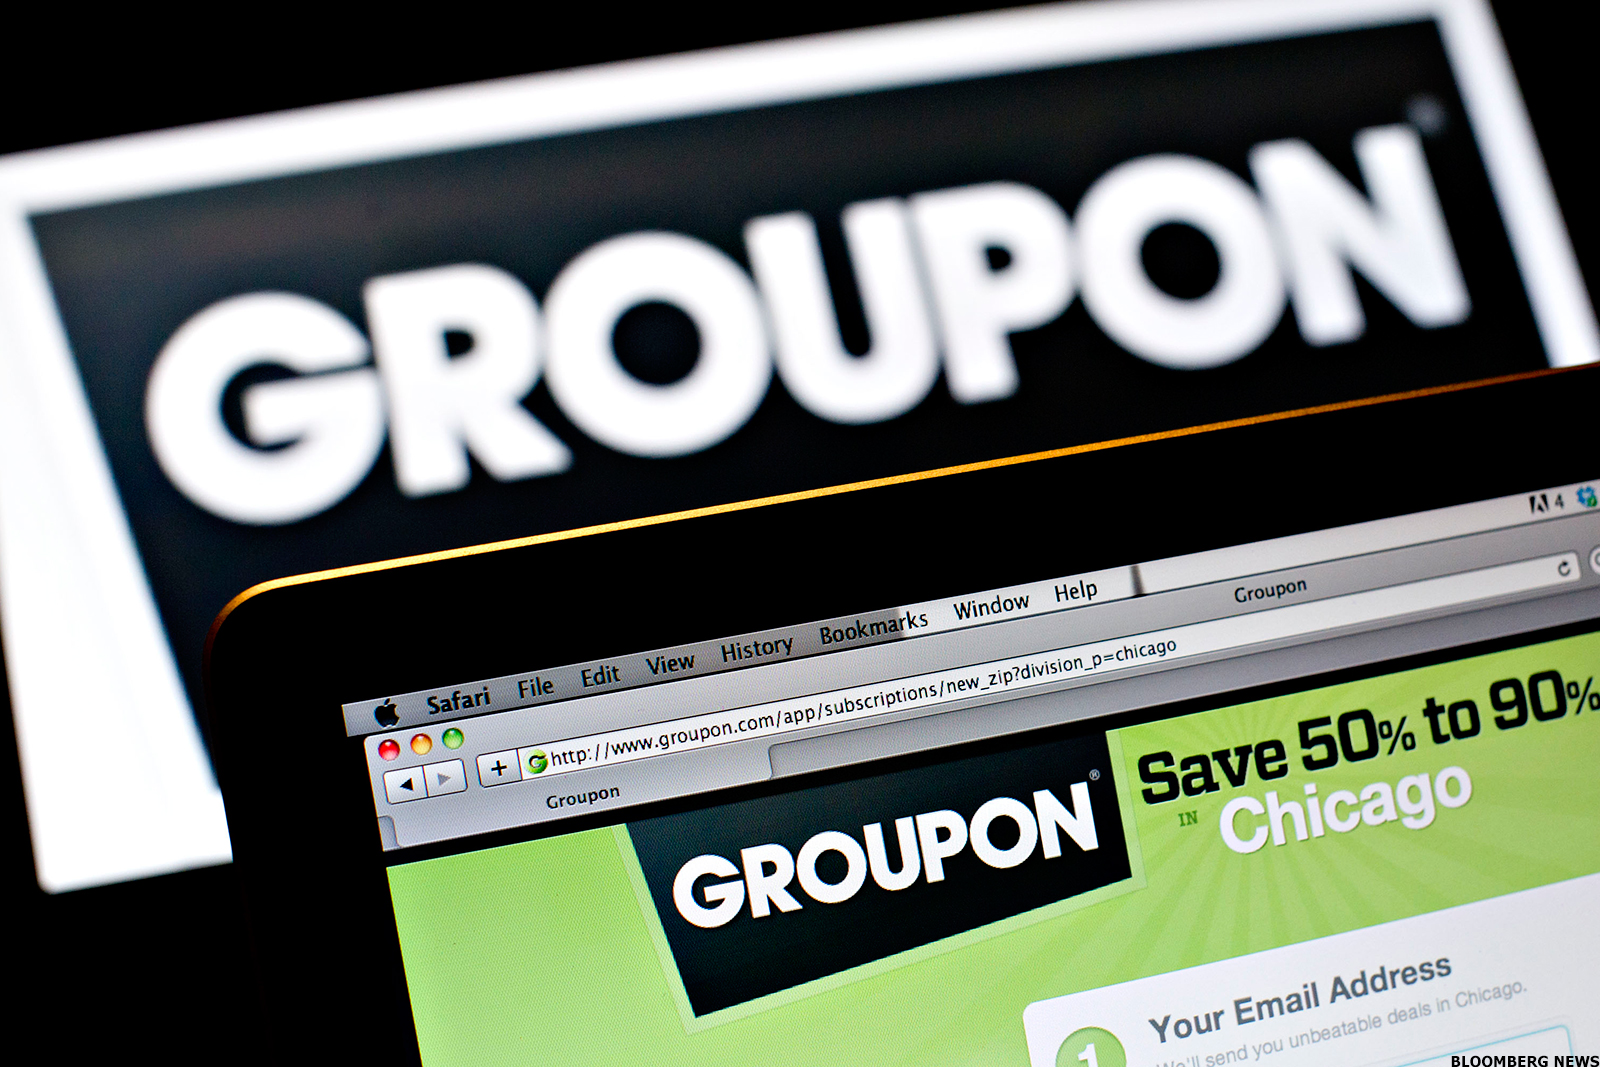 groupon s marketing Eric lefkofsky is a co-founder of the company, served as the company's executive chairman from its inception through august 5, 2013, served in the office of the chief executive from february 28, 2013 until august 5, 2013, served as the company's chief executive officer from august 5, 2013 until november 3, 2015, and has served as chairman since november 3, 2015.